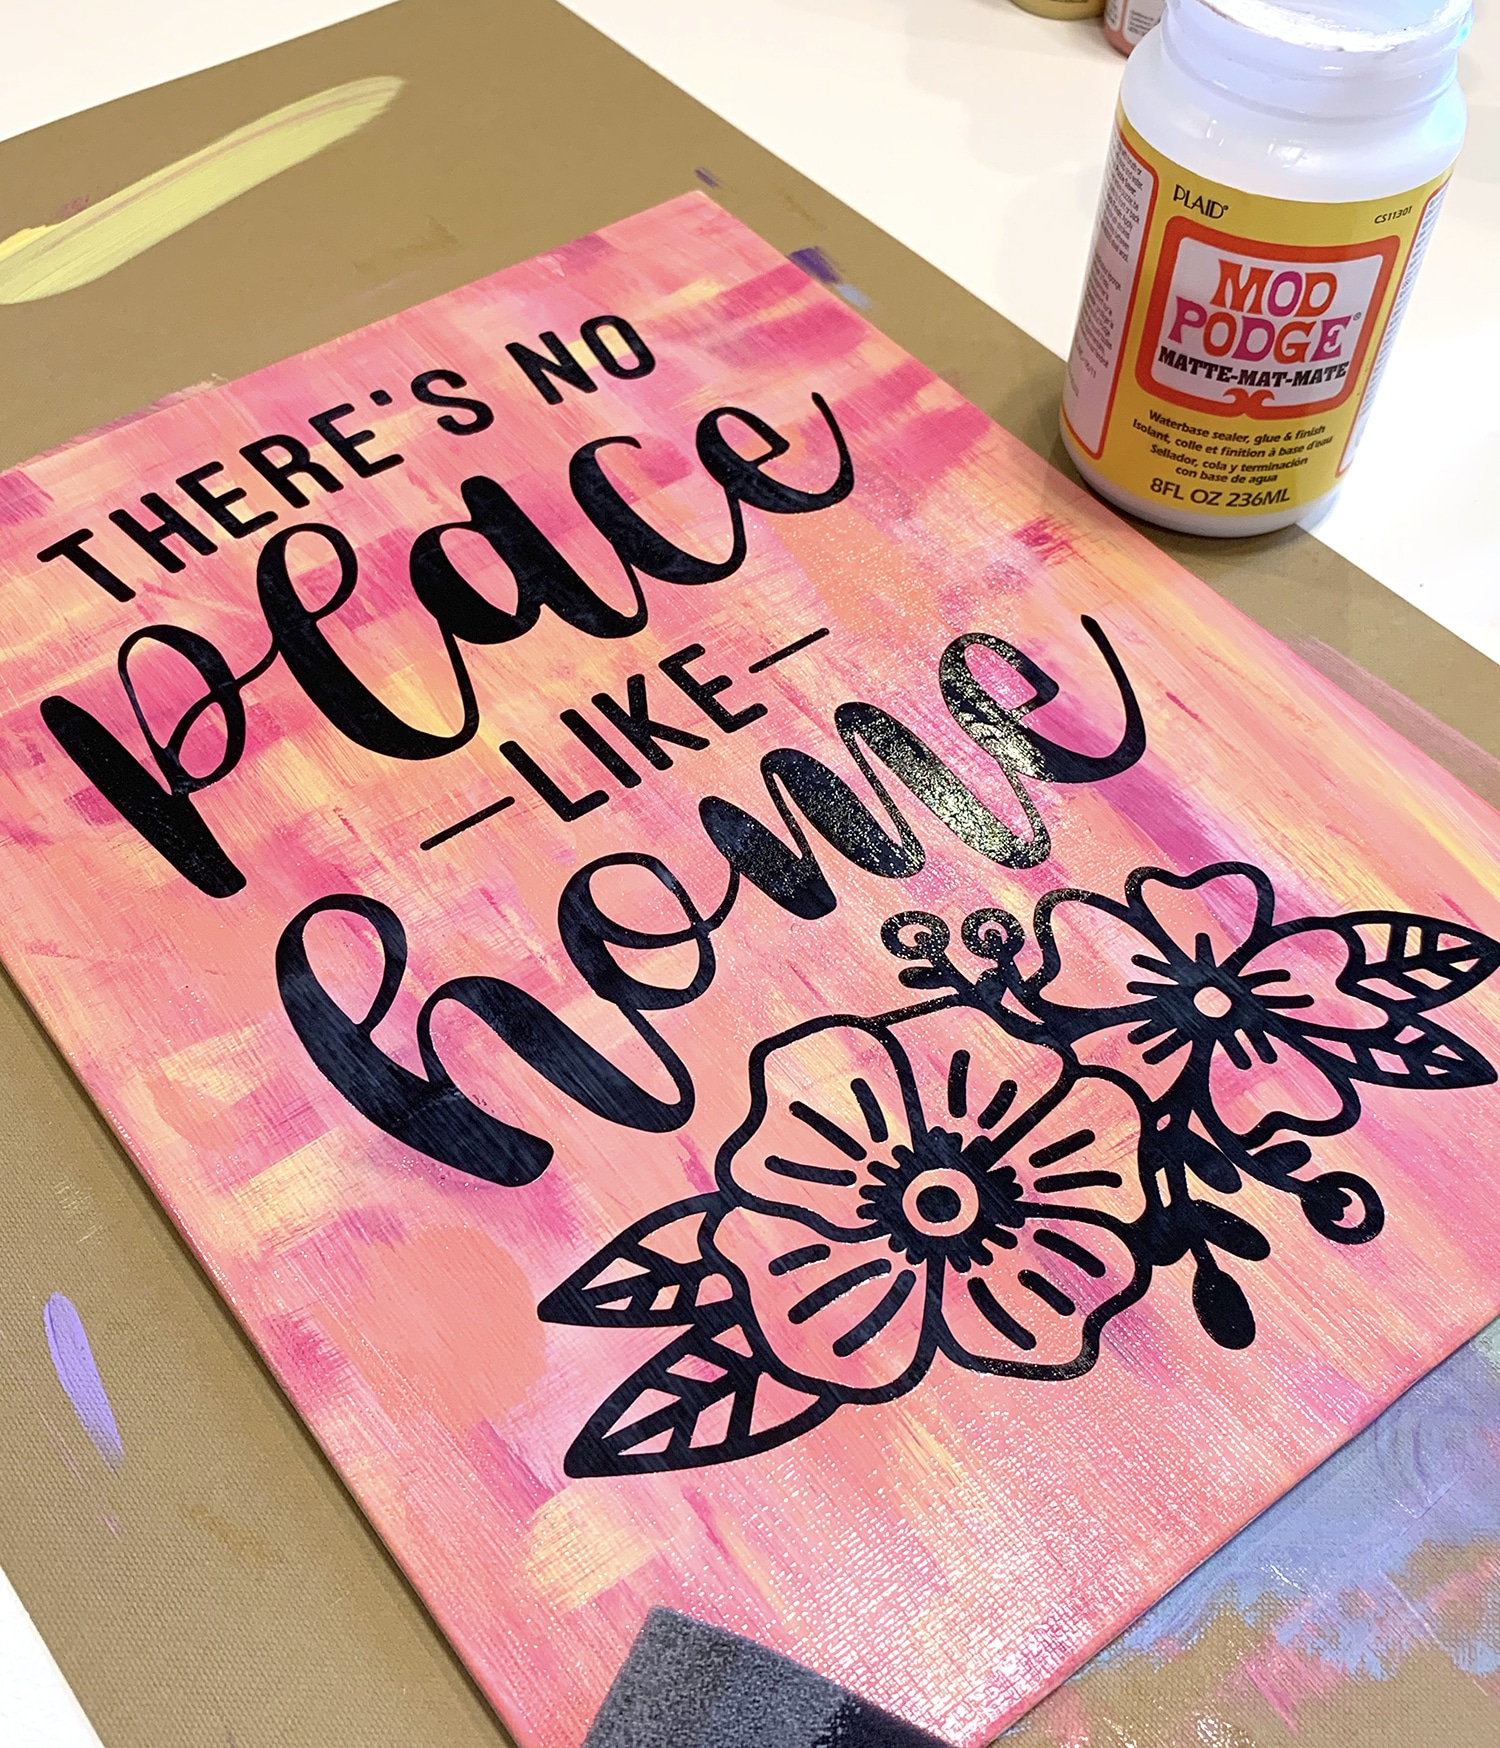 Applying Mod Podge to a hot mess canvas with vinyl quote